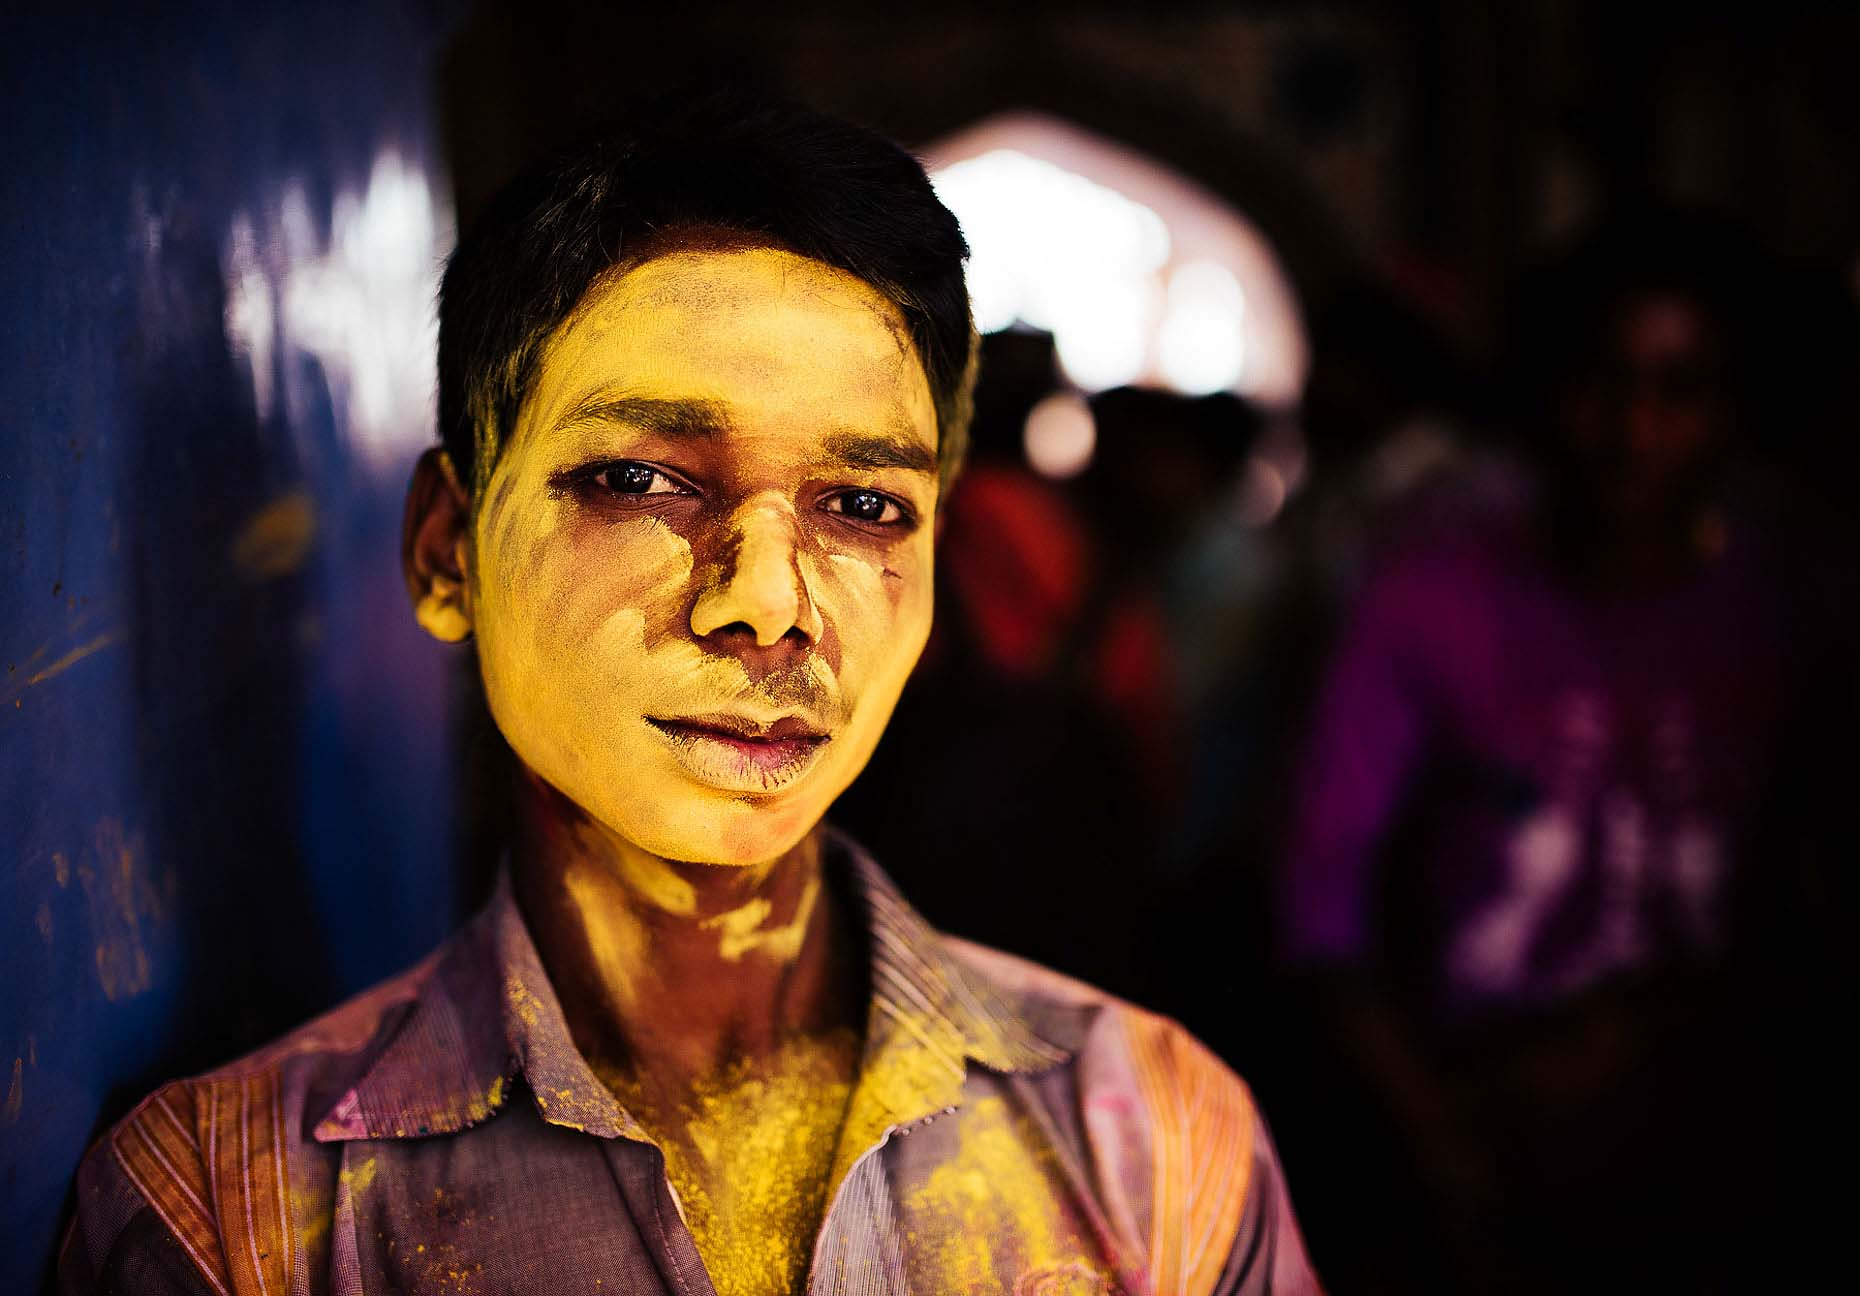 Lathmar-Holi-Festival-Colour-Portrait-India-004